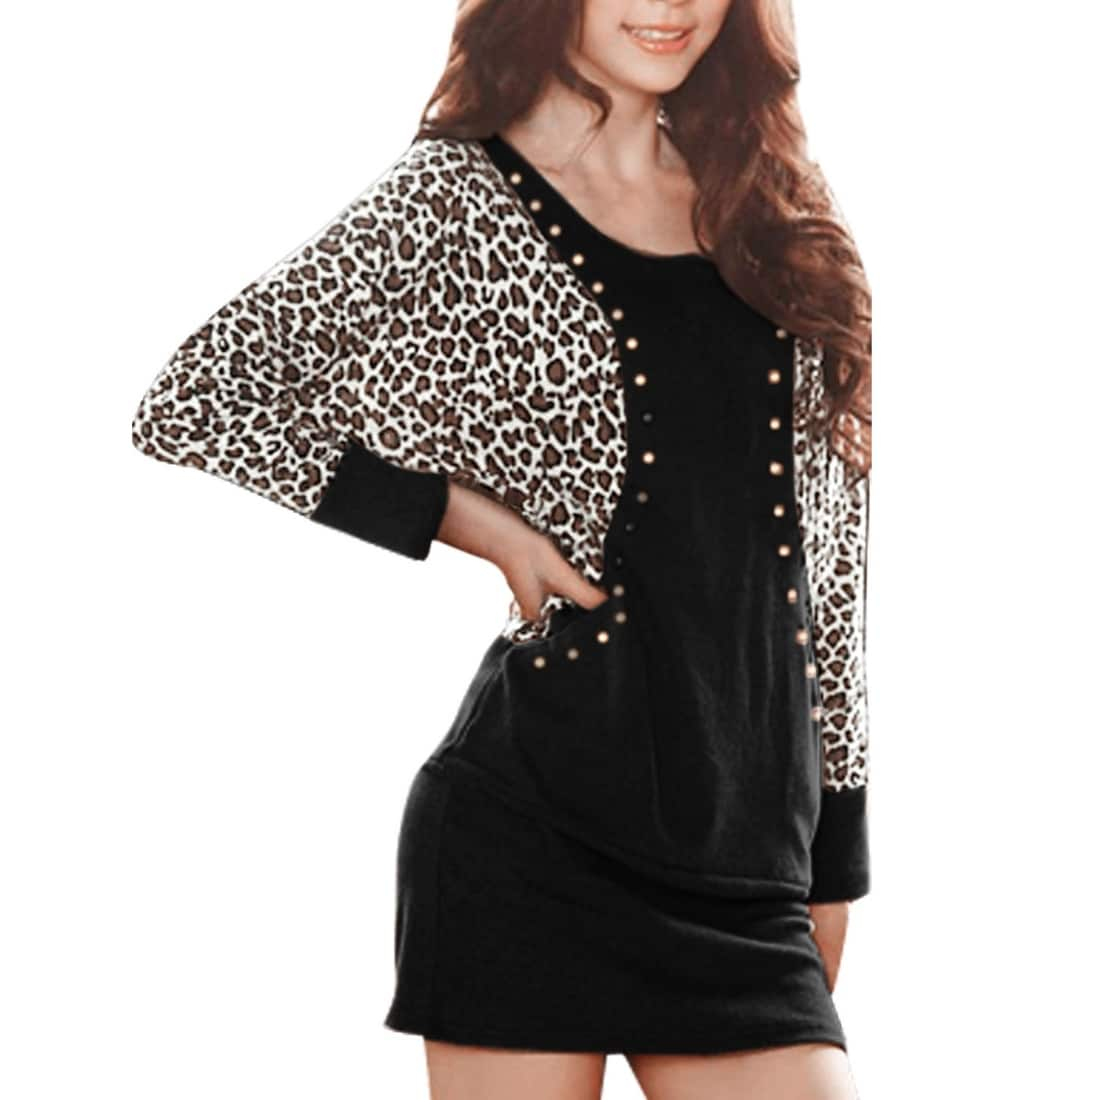 62a3d0a7ab853f Shop Allegra K Women Leopard Prints Studded Batwing Sleeves Mini Bodycon  Dress - On Sale - Free Shipping On Orders Over $45 - Overstock - 23580339